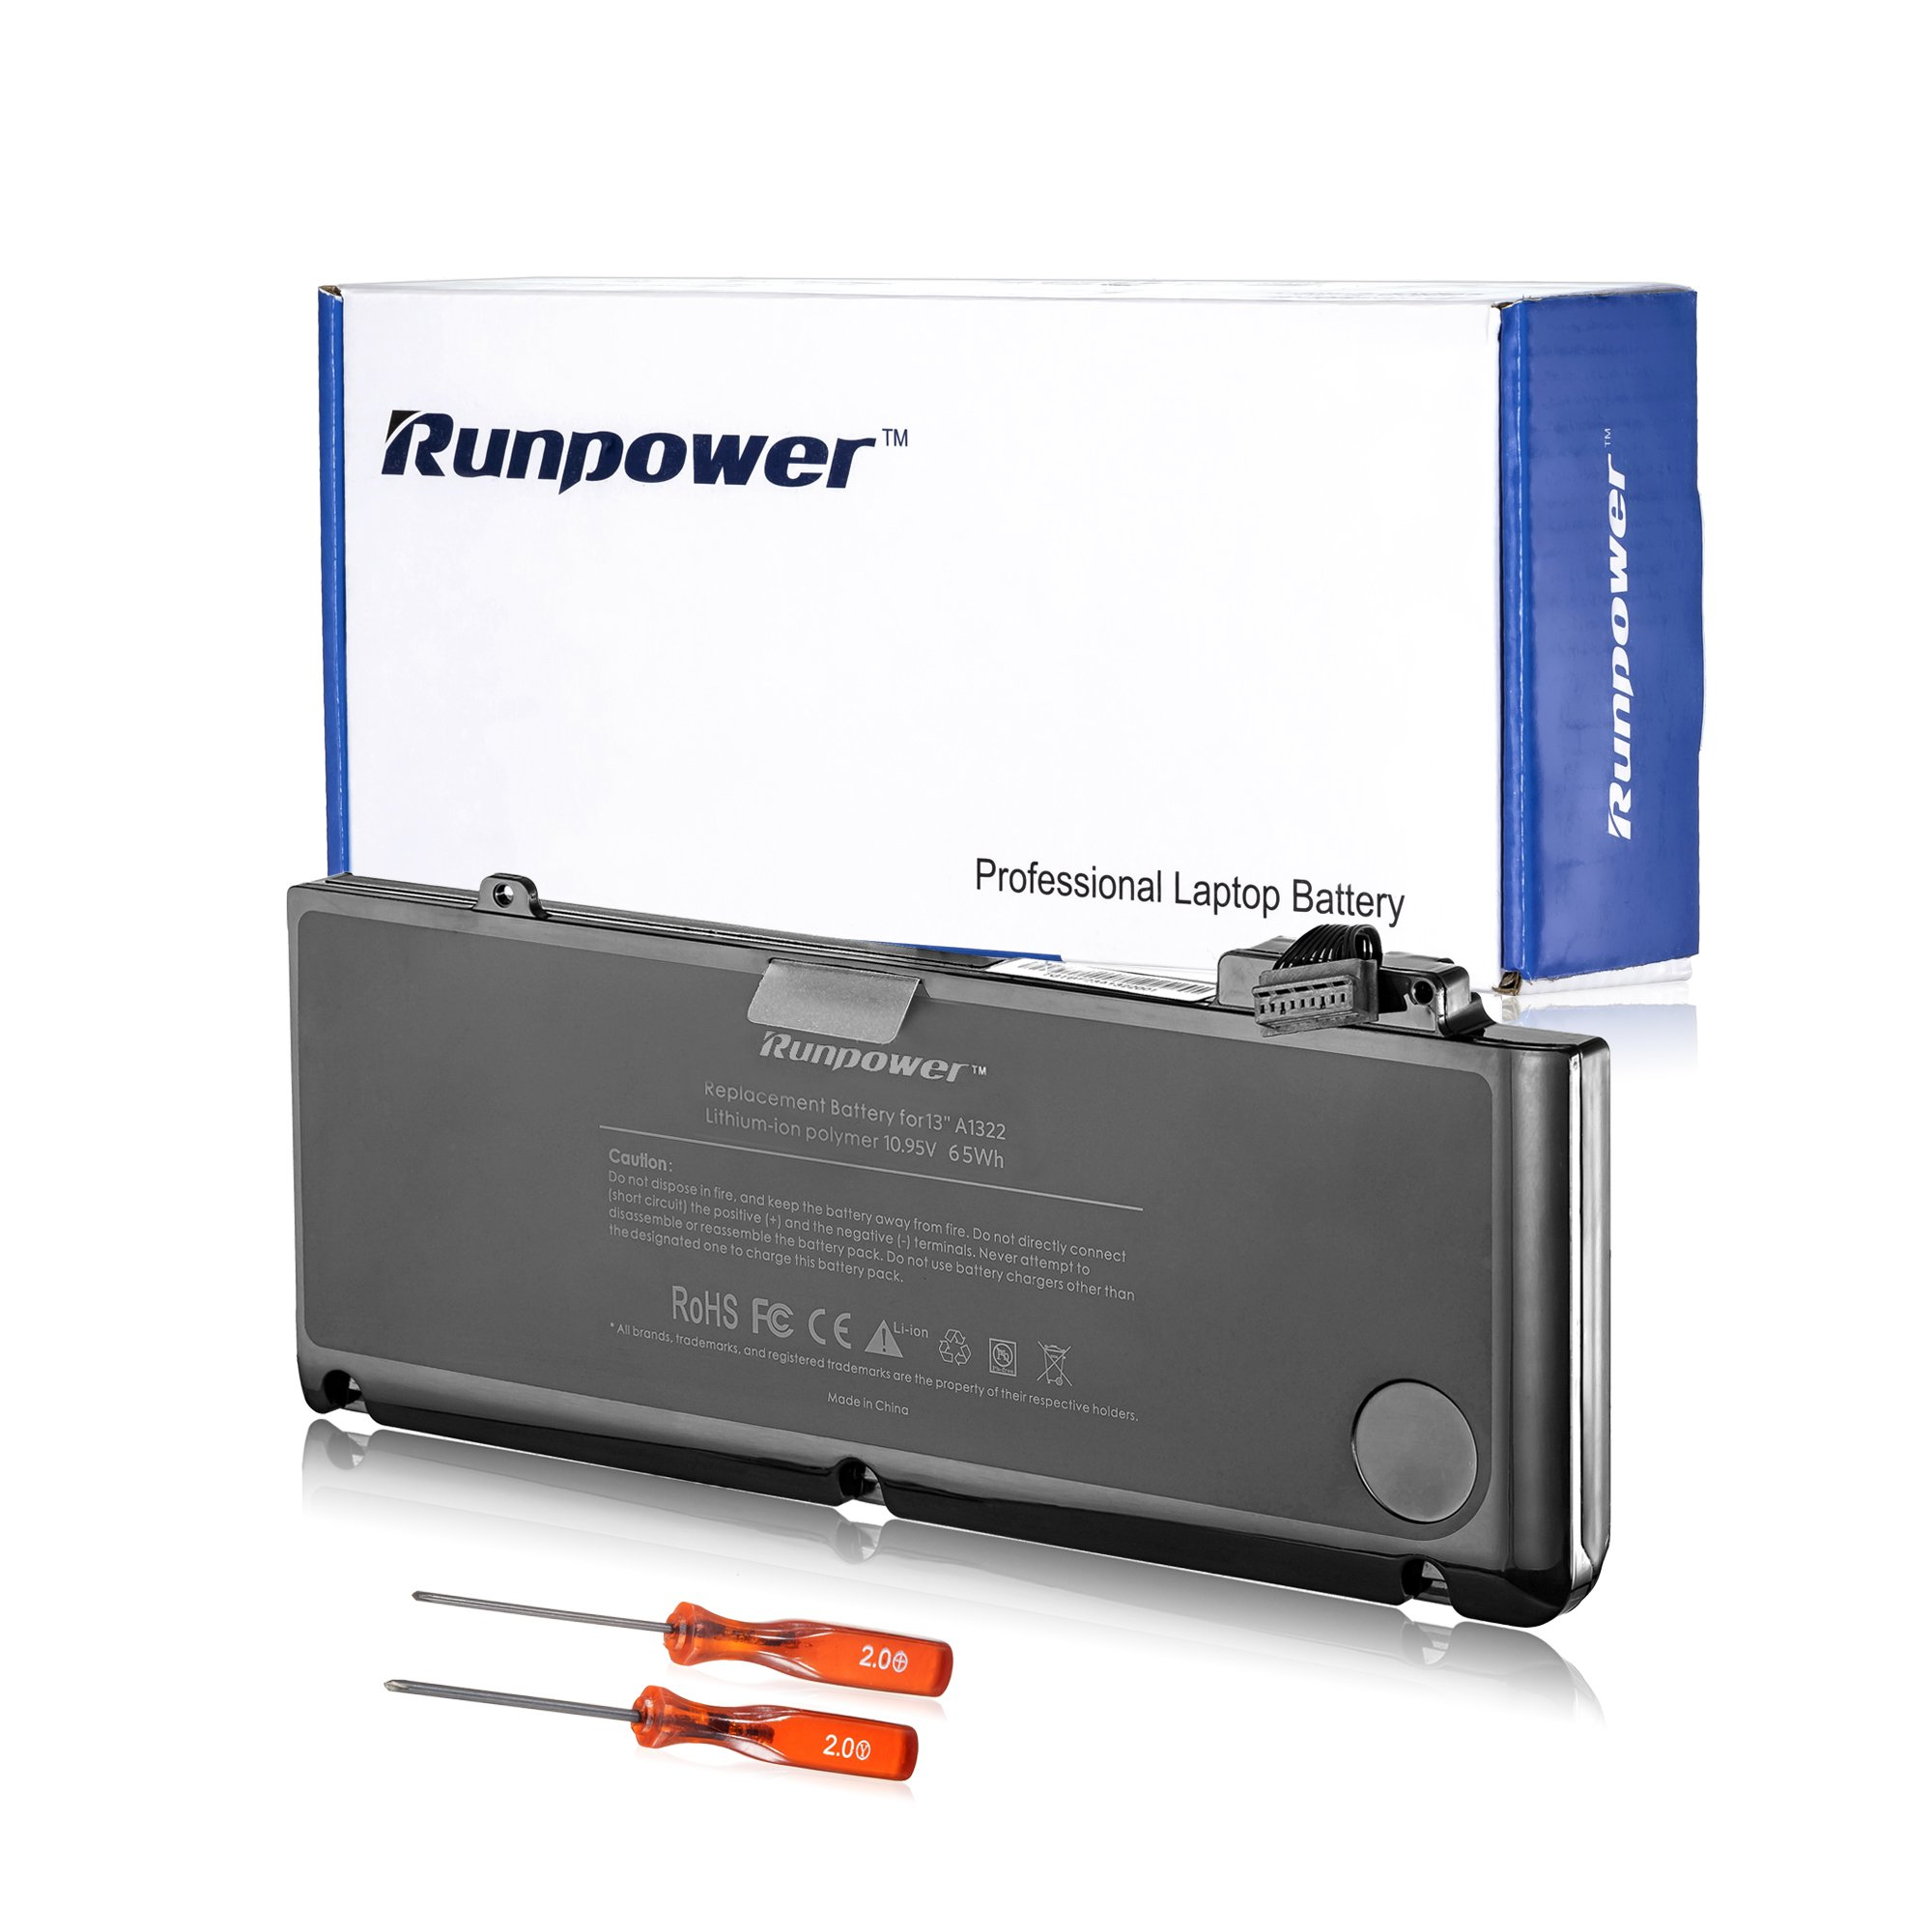 Runpower Replacement Battery for MacBook Pro 13 inch A1278(Mid 2009, Mid 2010, Early 2011, Late 2011, Mid 2012) A1322 [10.95V 6000mAh]